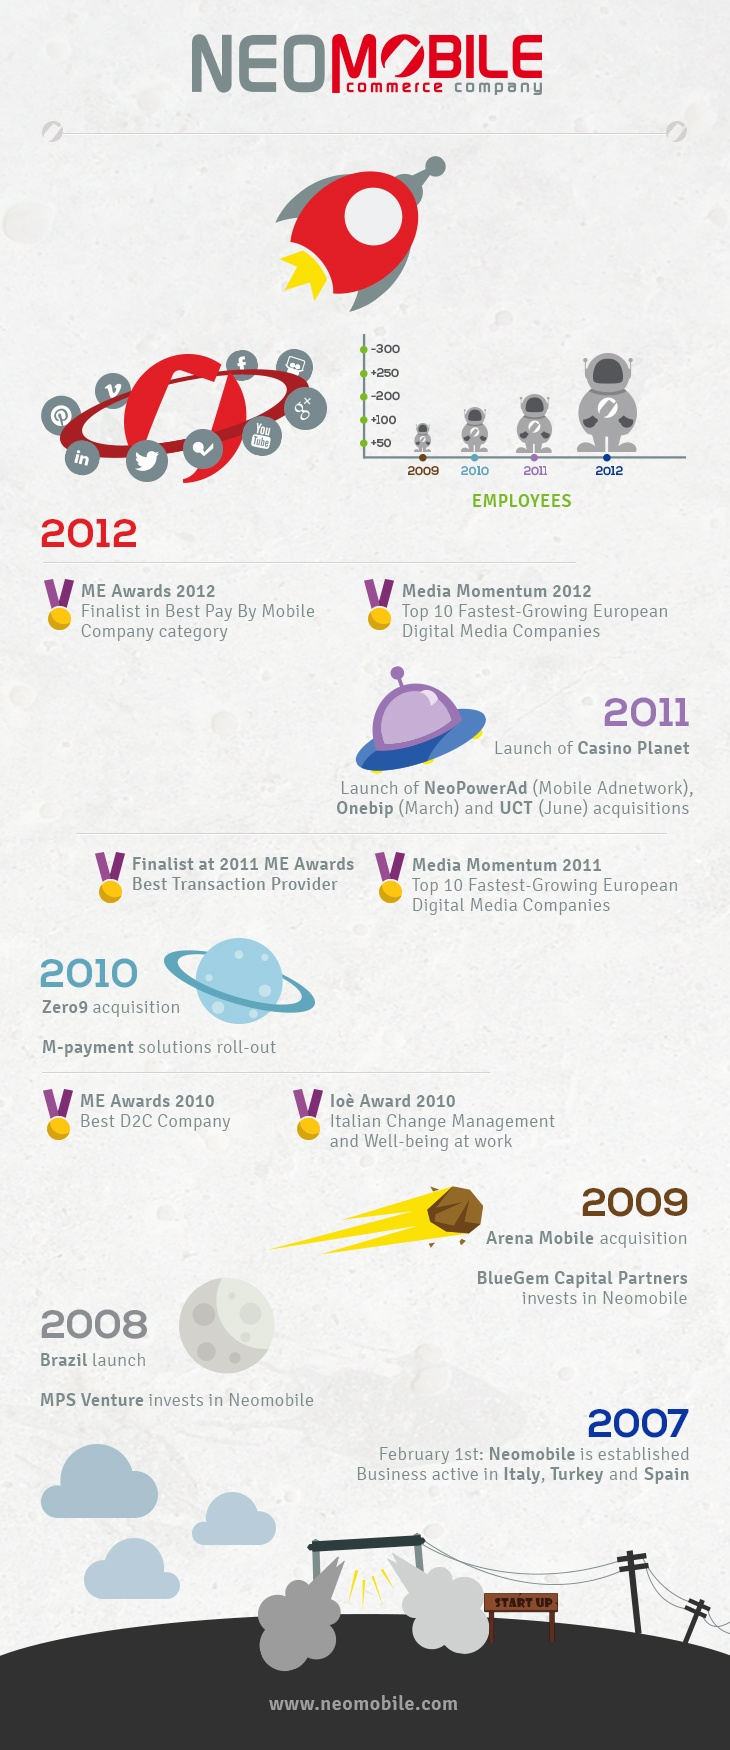 neomobile-history-infographic